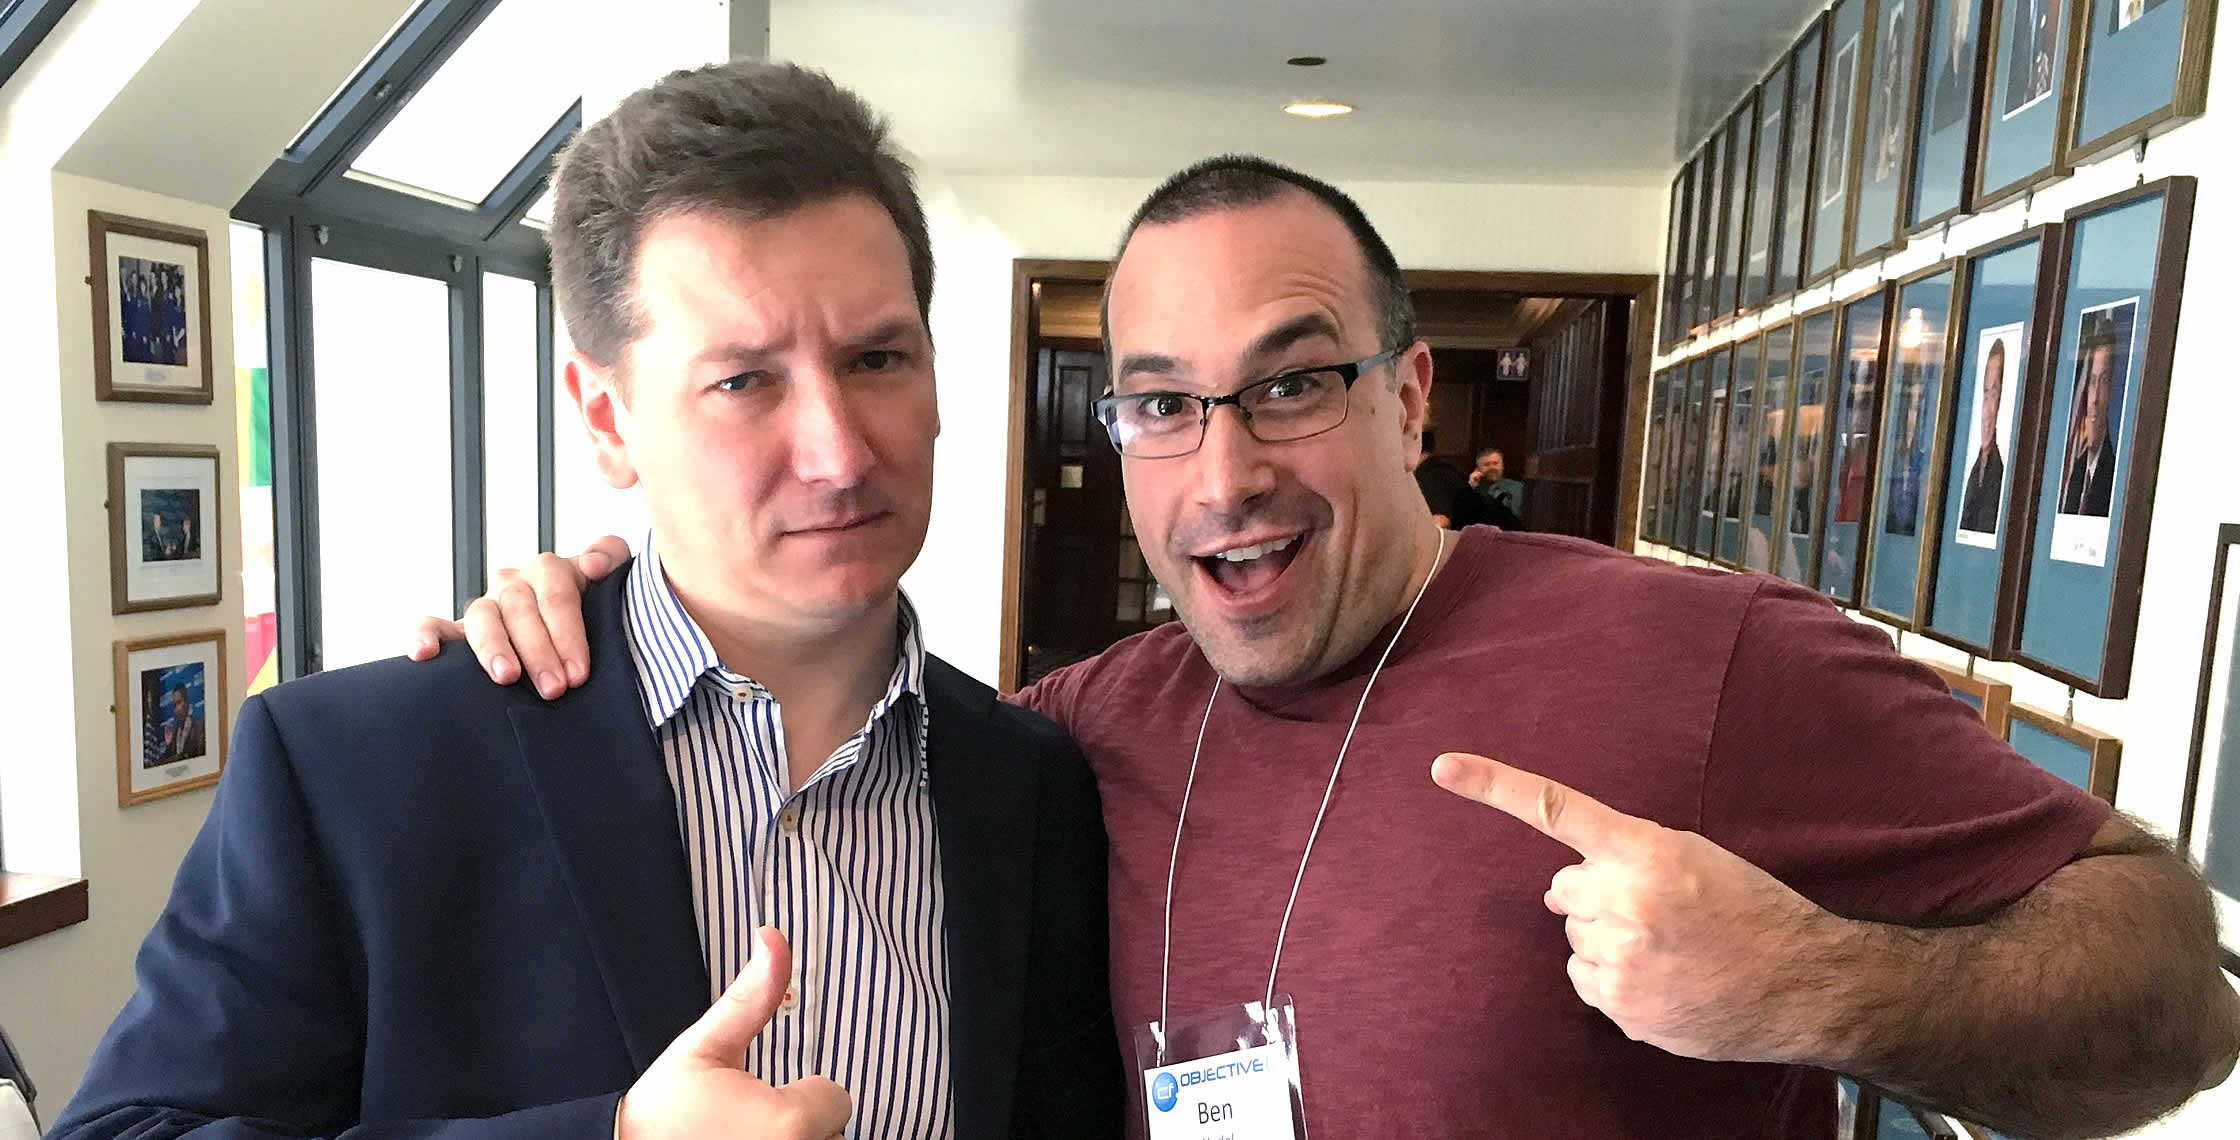 Ben Nadel at cf.Objective() 2017 (Washington, D.C.) with: Geoff Bowers